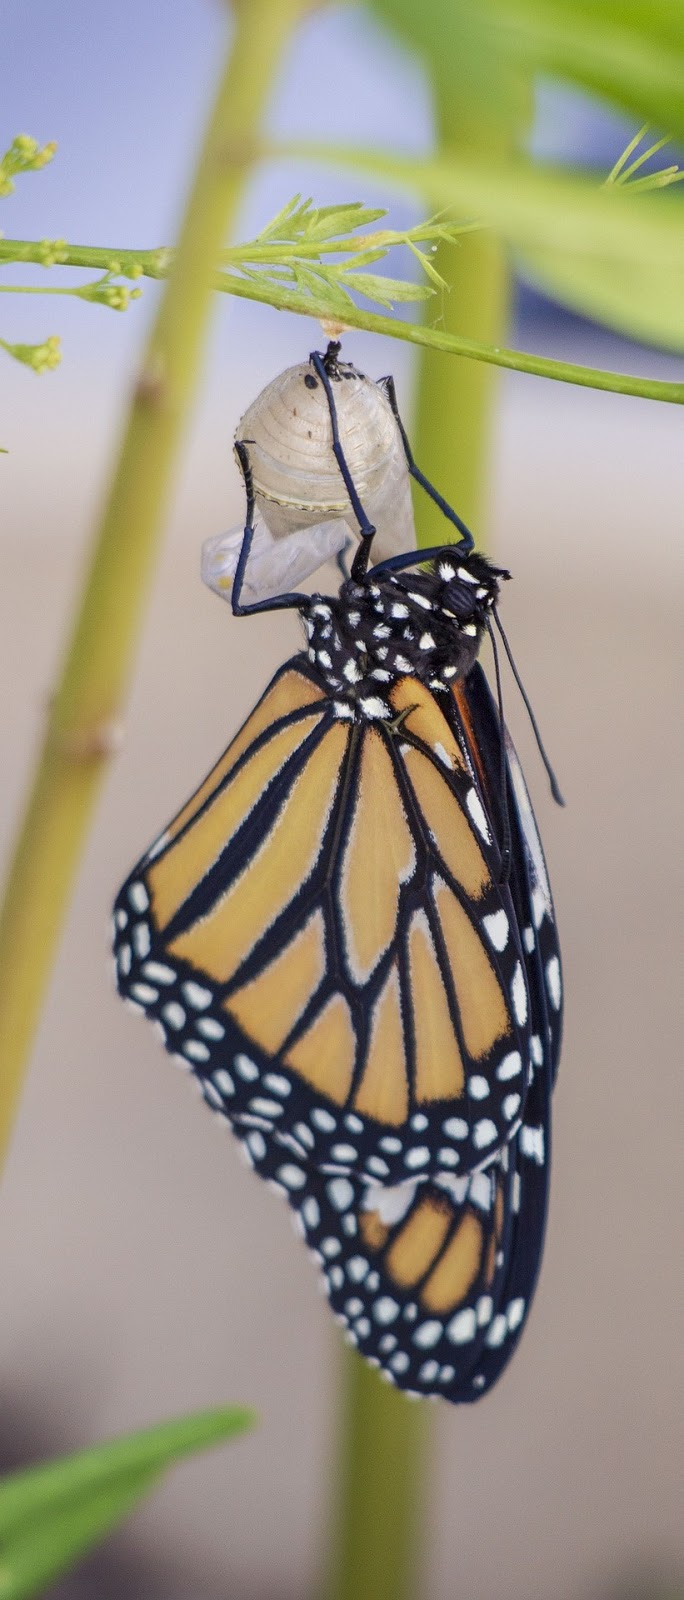 A monarch butterfly after metamorphosis.